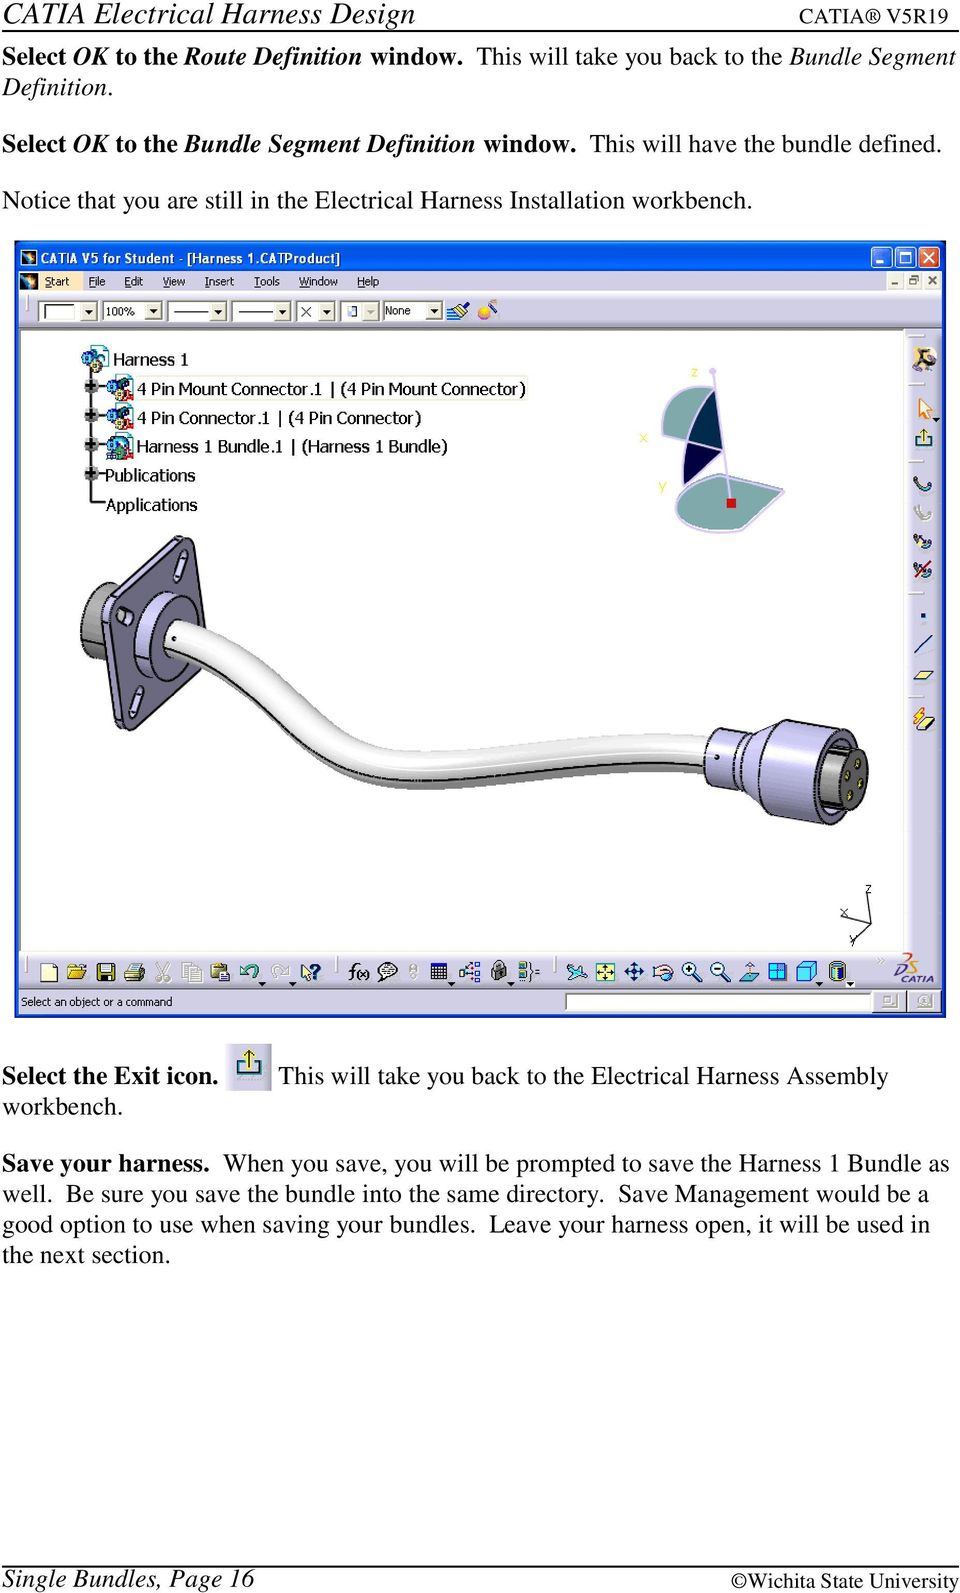 Catia Electrical Harness Design Table Of Contents Pdf Wire Assembly Workbench Select The Exit Icon This Will Take You Back To